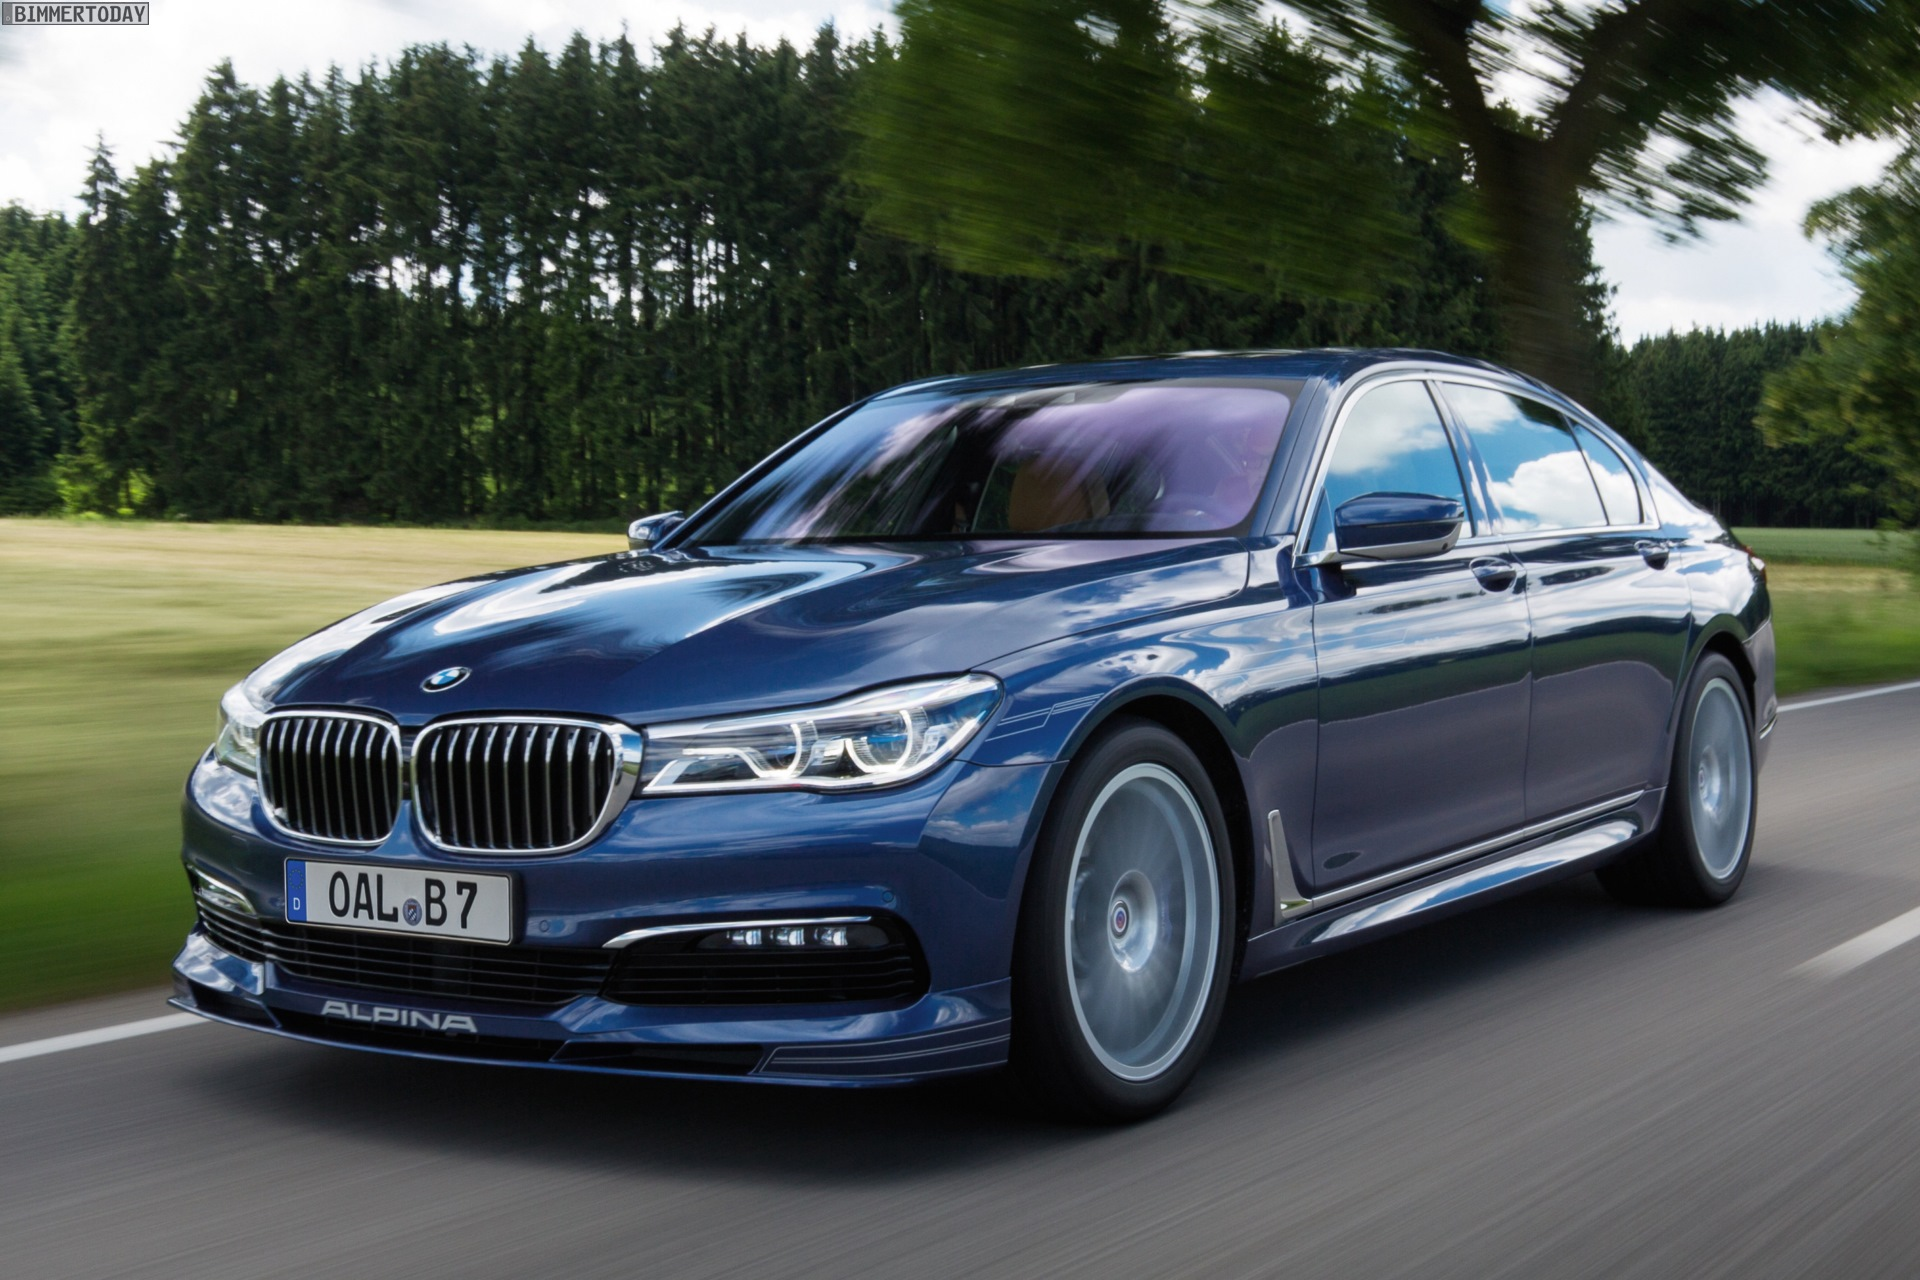 Bmw Alpina B7 Biturbo Neue Fotos Vom Edel 7er In Alpinablau